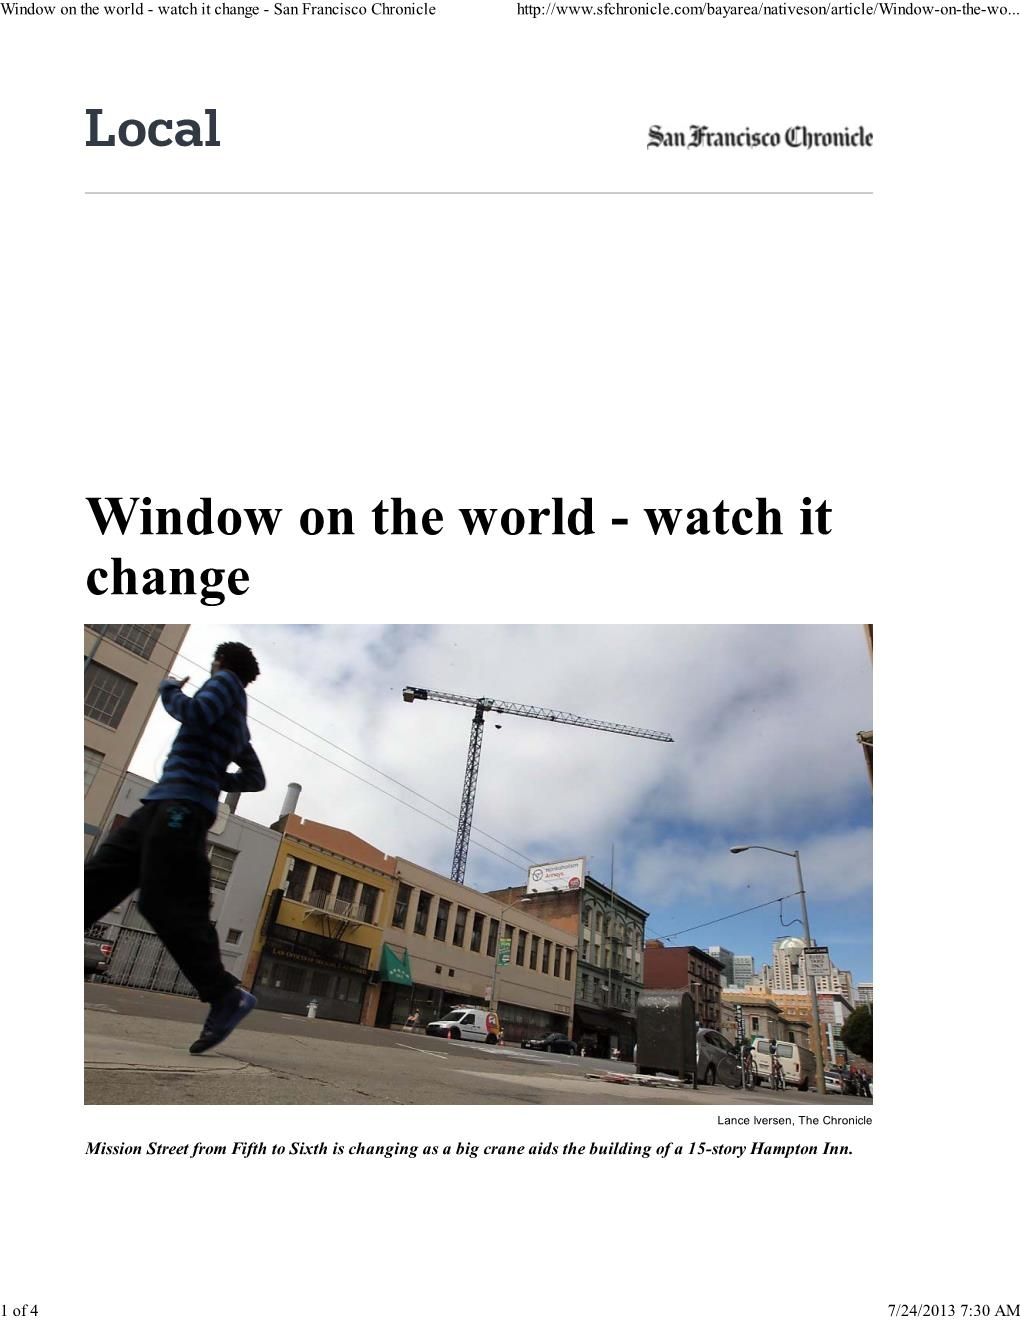 Window on the world - watch it change - San Francisco Chronicle.jpg